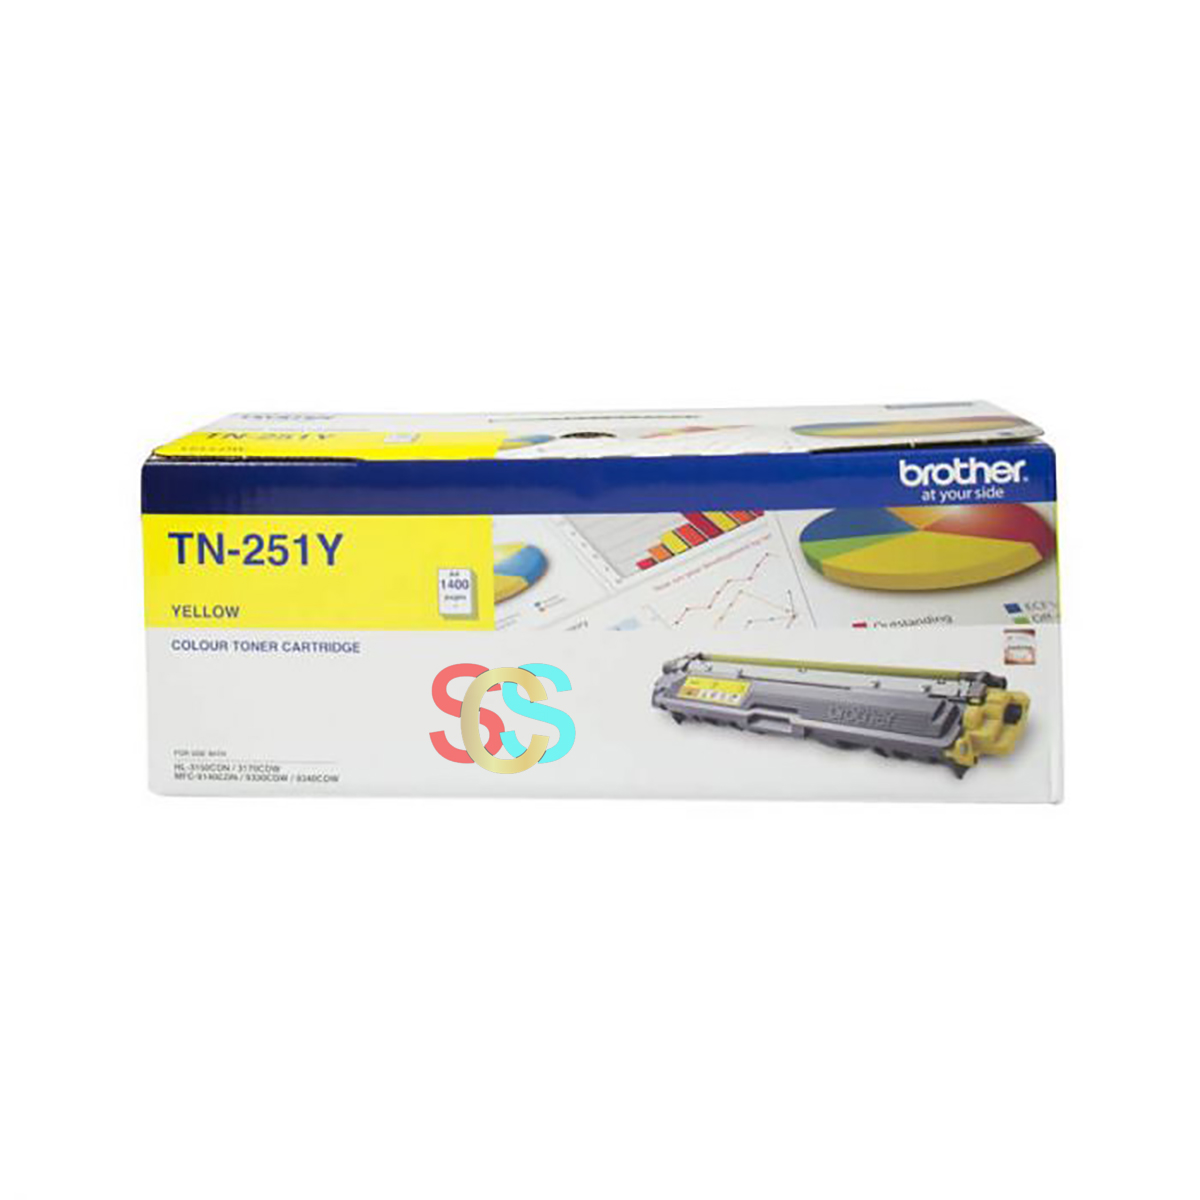 Brother TN-261 Yellow Color Toner